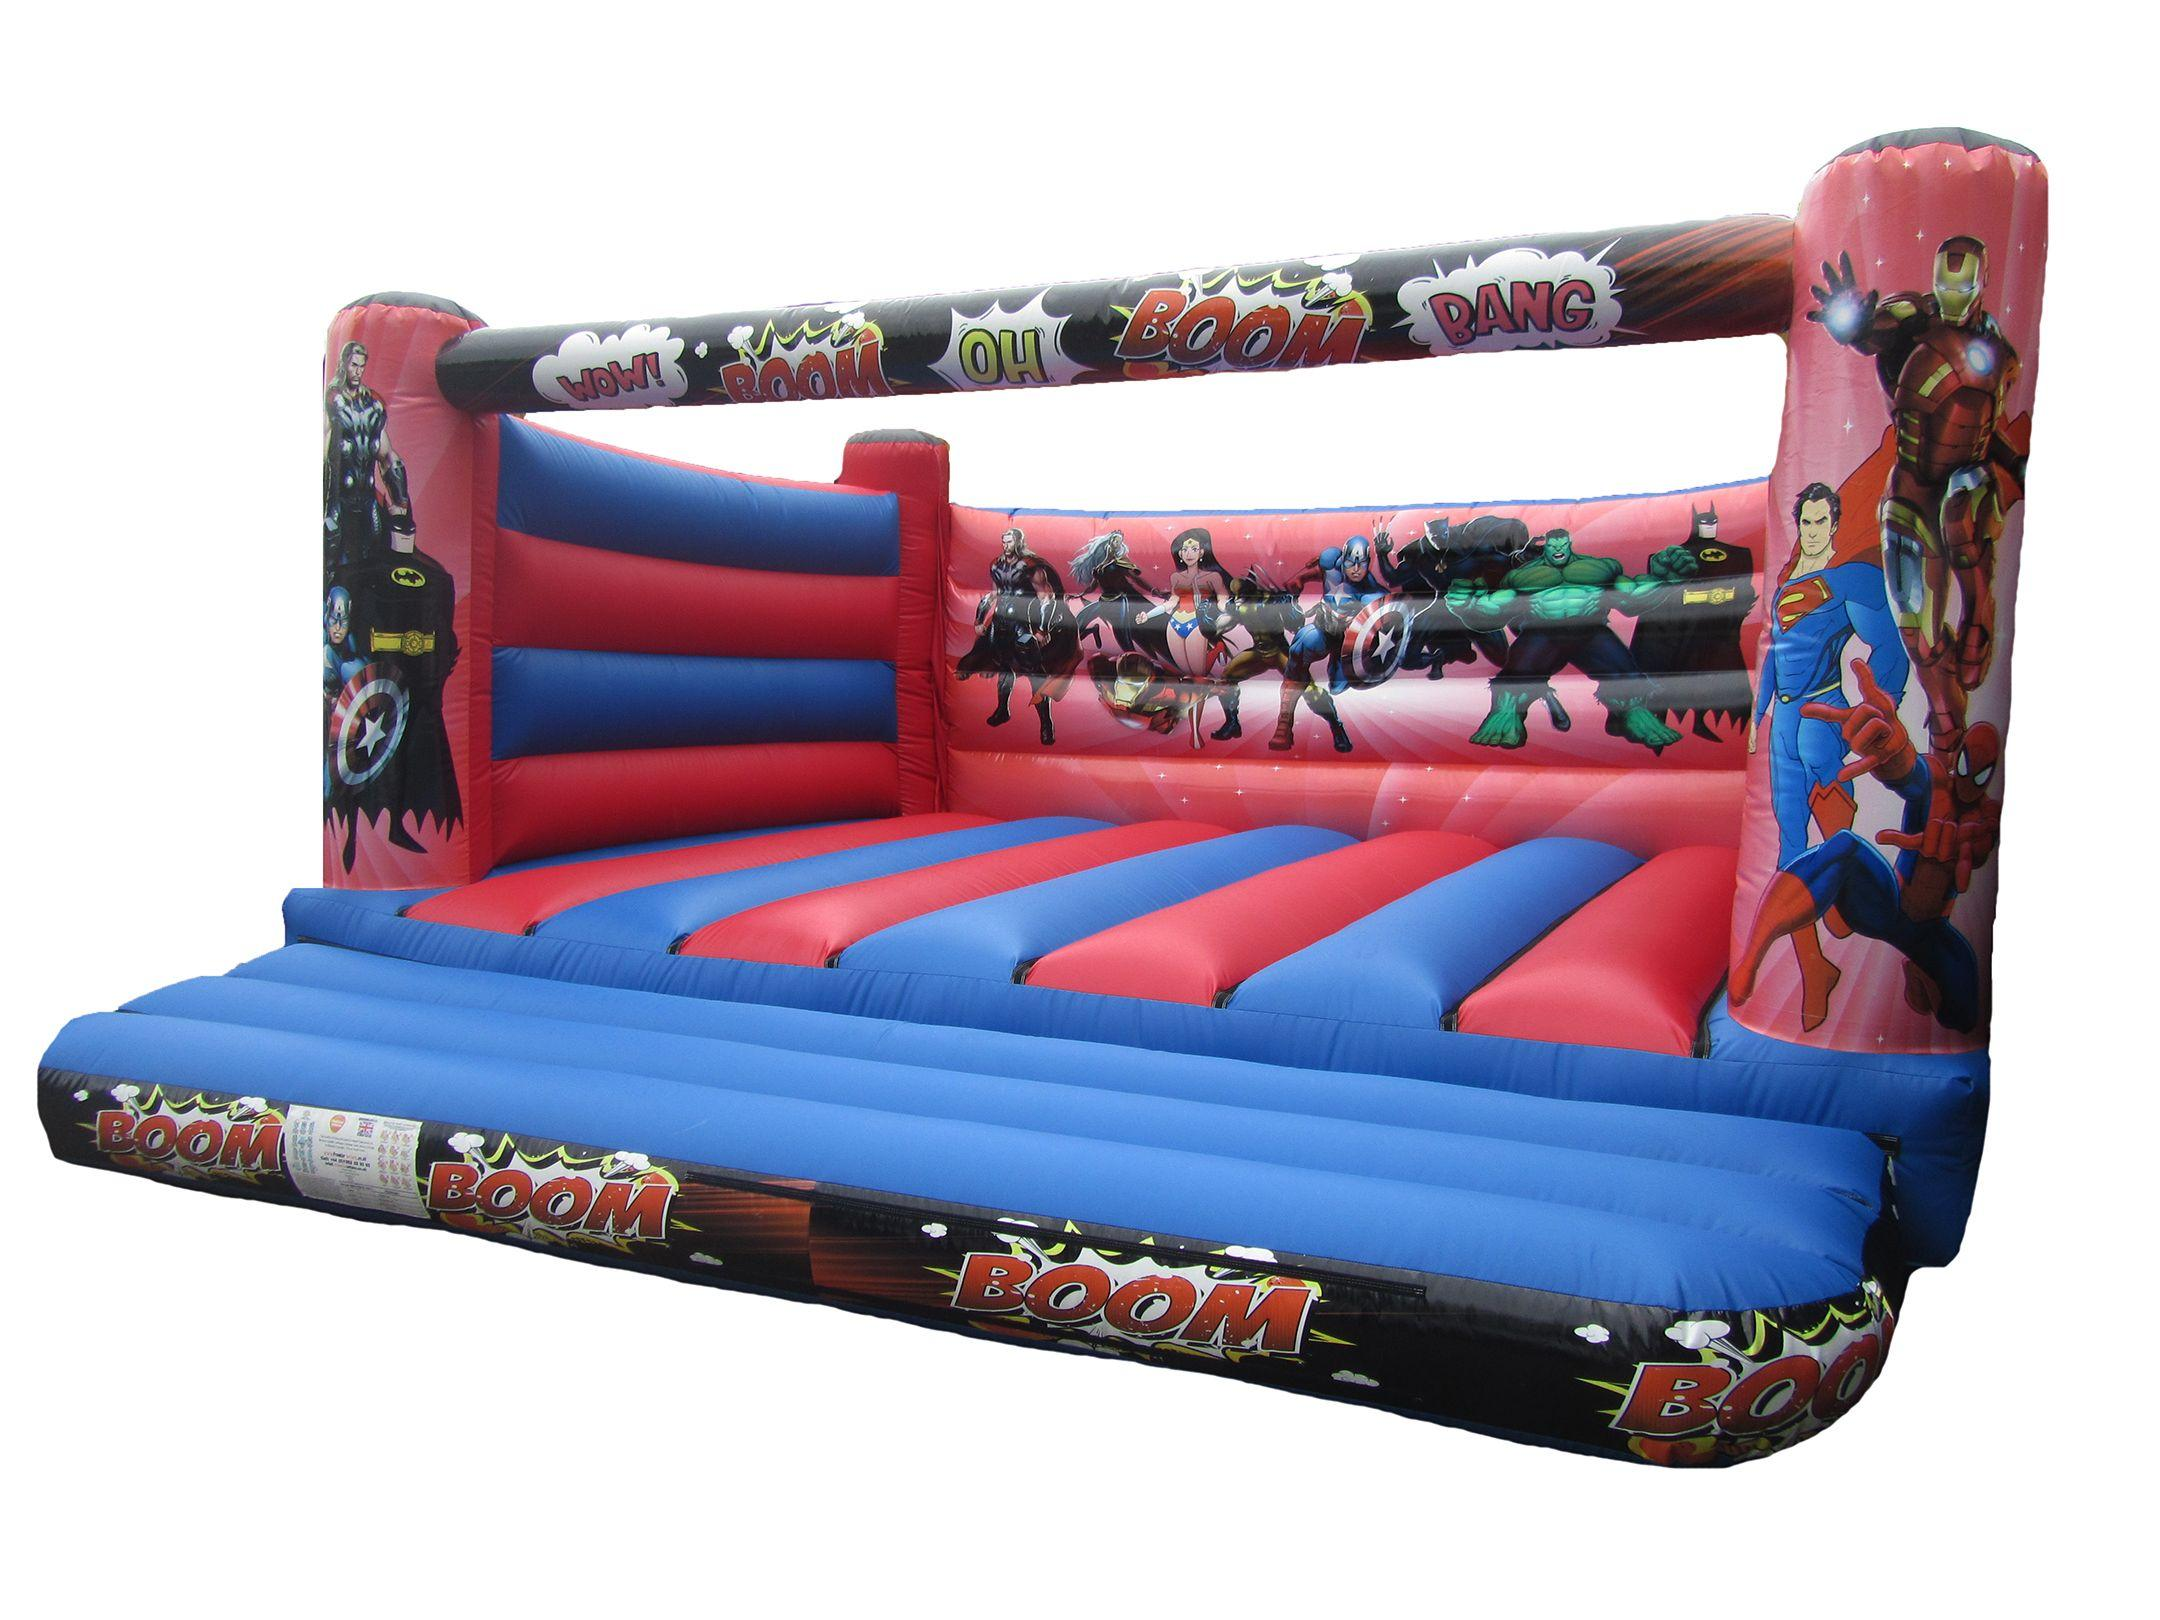 Commercial 4 post Adults Bouncy Castle with Superhero Themed Artwork